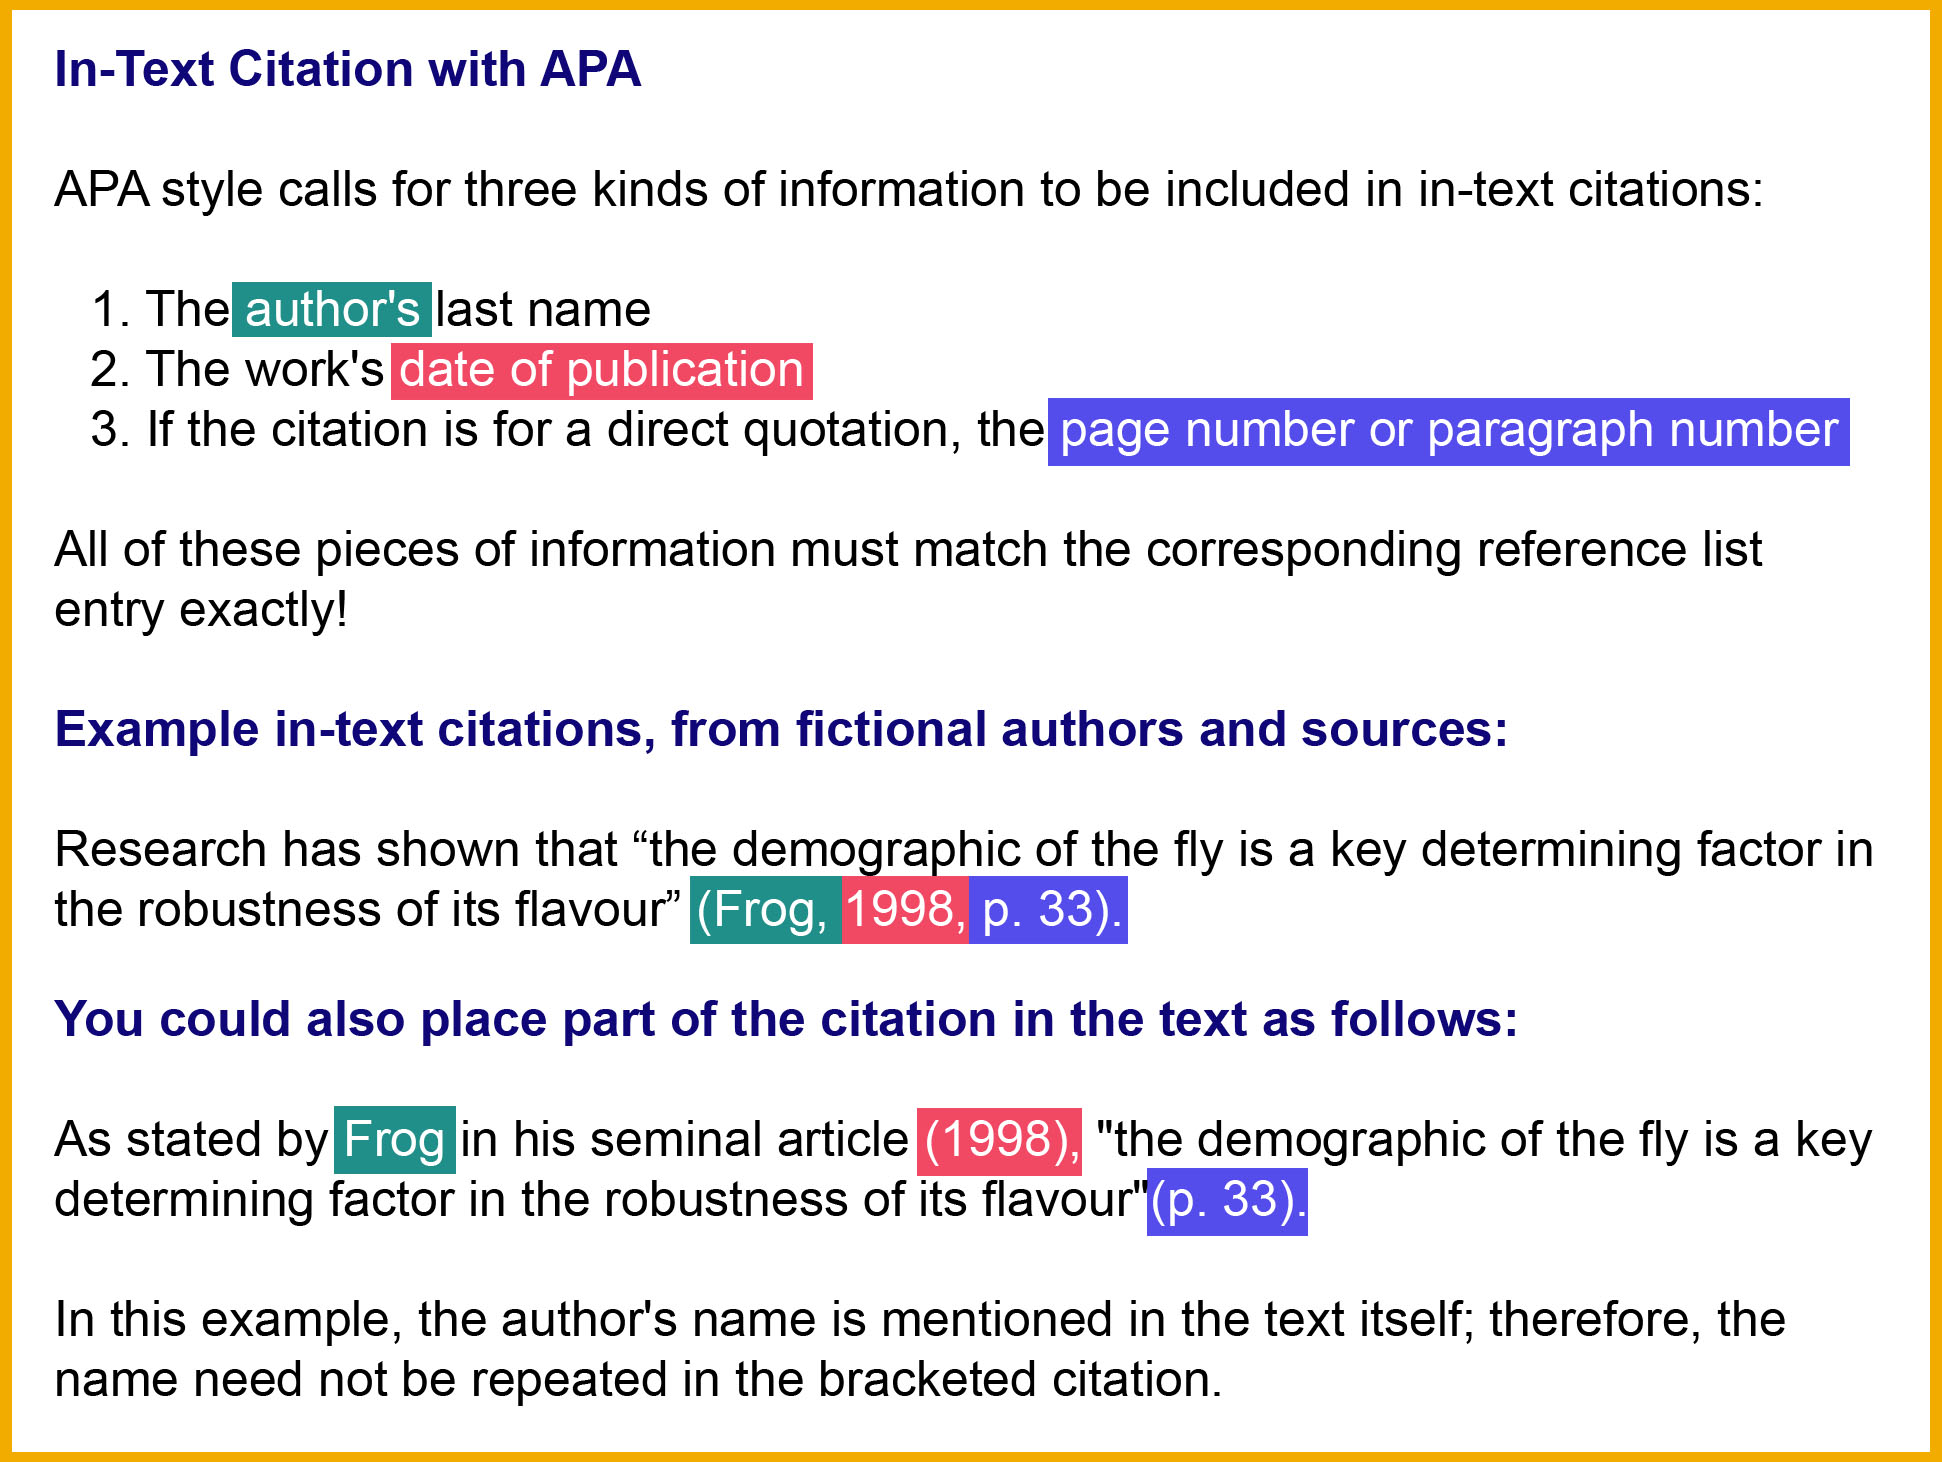 apa writing citation guide How to cite everything in apa format with our apa citation guide the apa citation guide includes popular sources like books, journals, and websites.